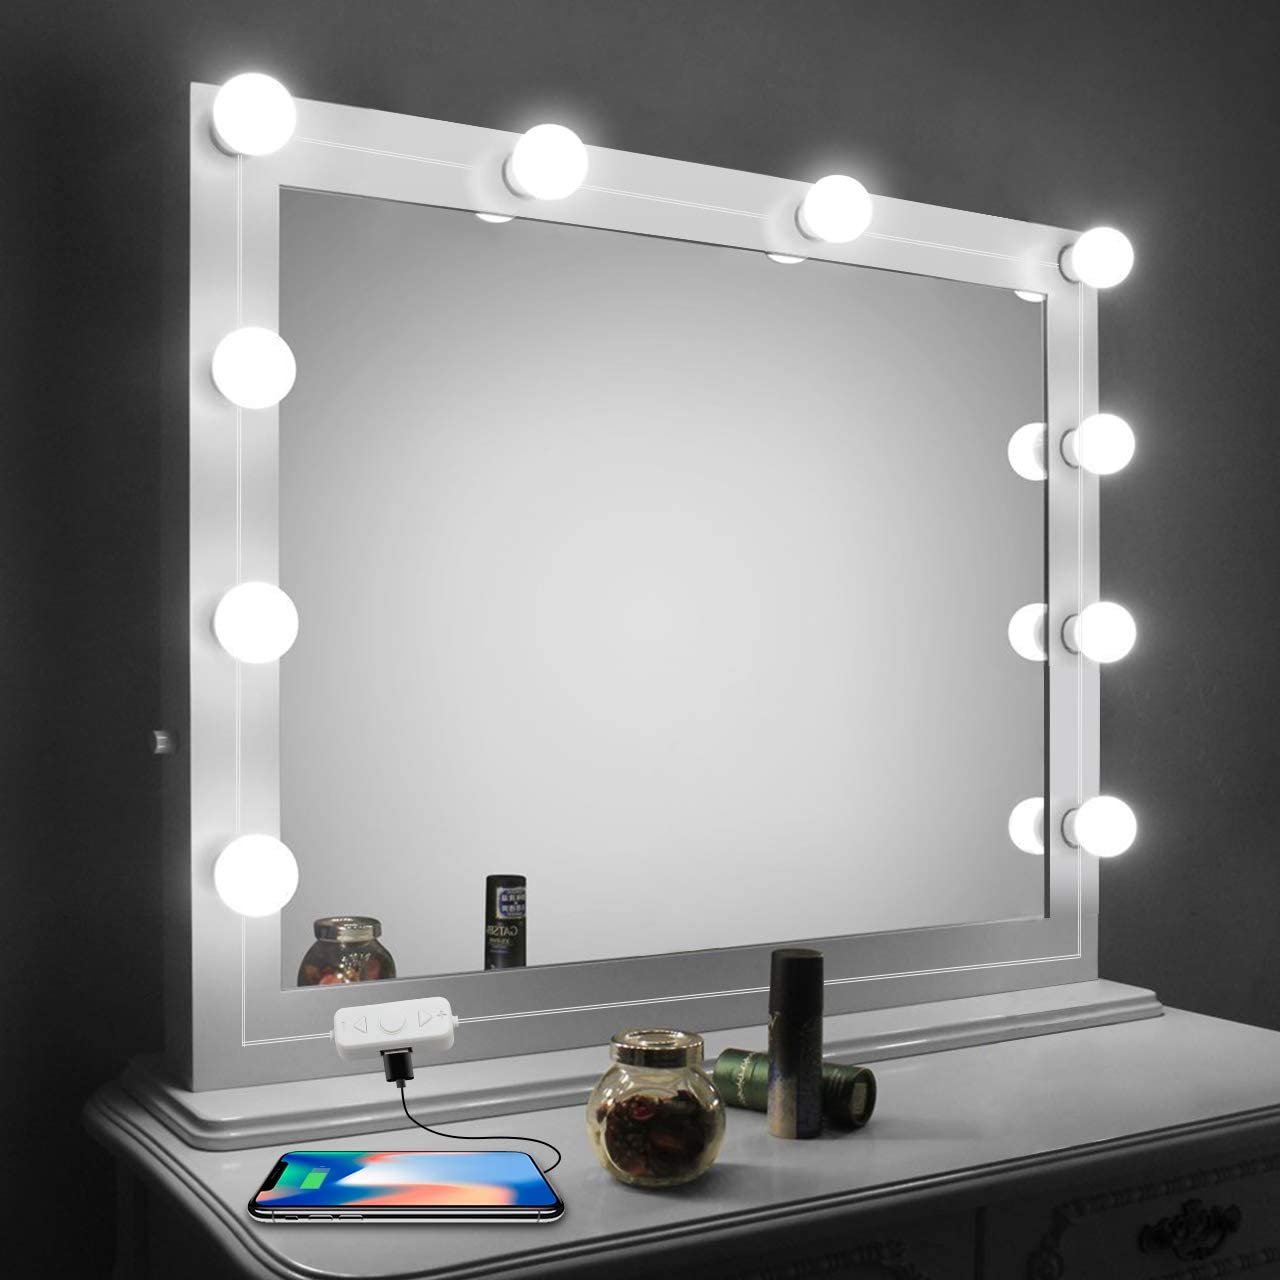 Buy Vanity Mirror Lights Kit Led Lights For Mirror With Dimmer And Usb Phone Charger Led Makeup Mirror Lights Kit Hollywood Style Lighting Fixture Strip 6500k For Bathroom Dressing Room Vanity Table Online In